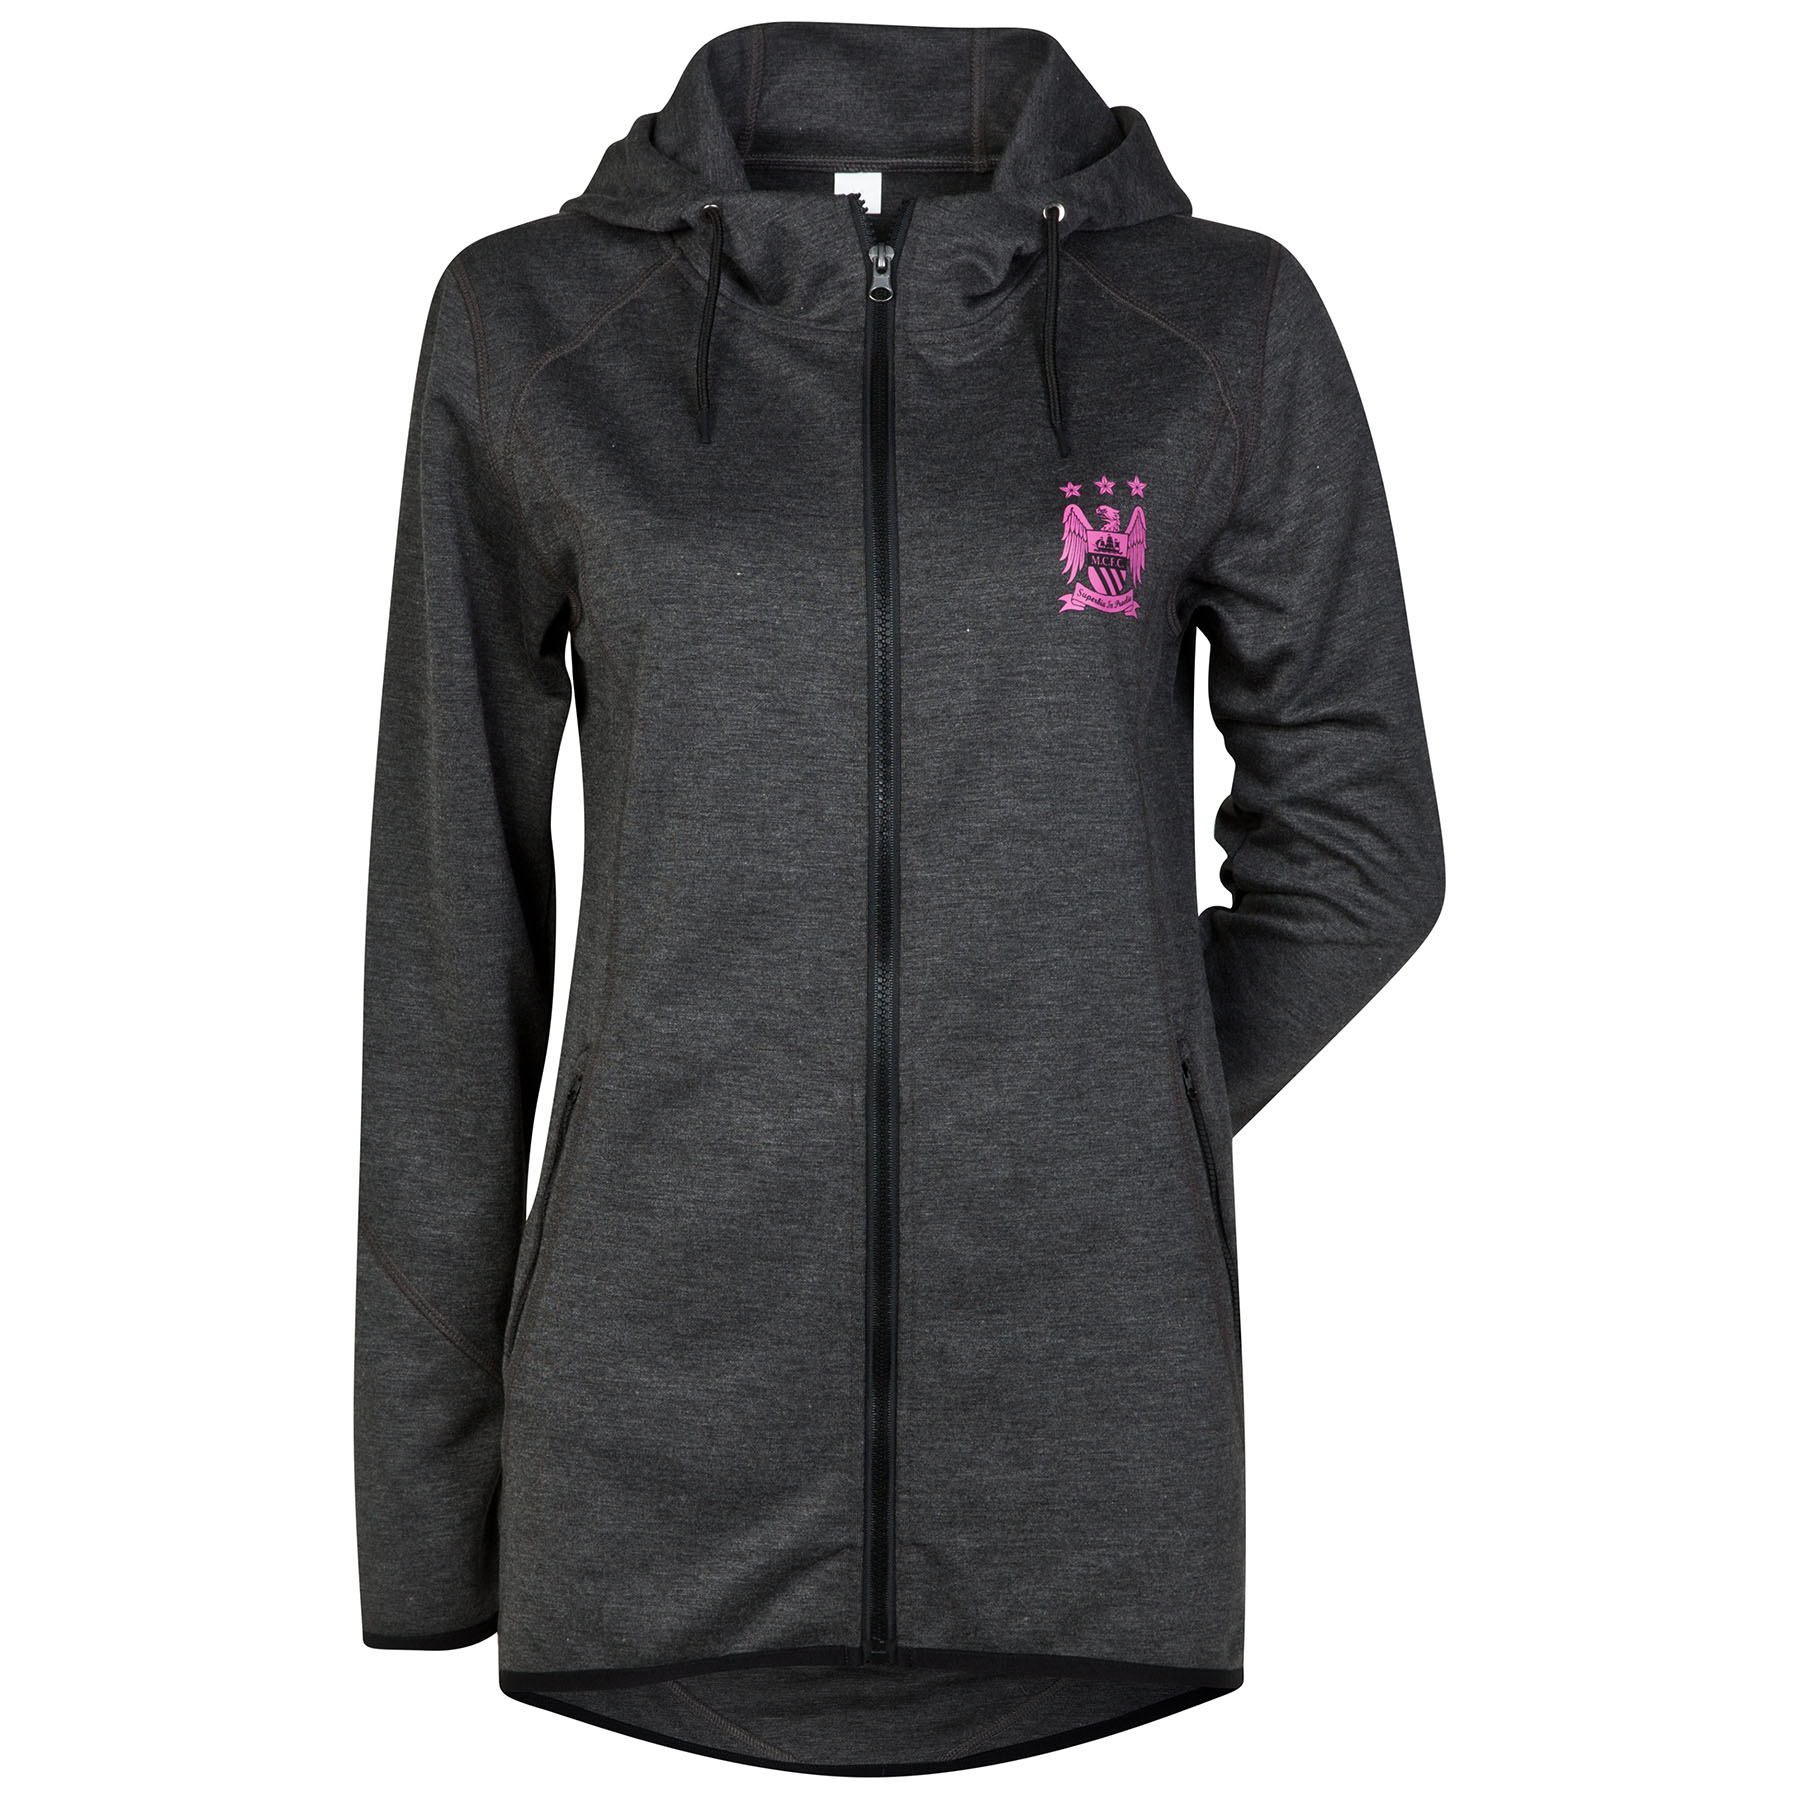 Manchester City Performance Hoodie - Charcoal Marl Womens